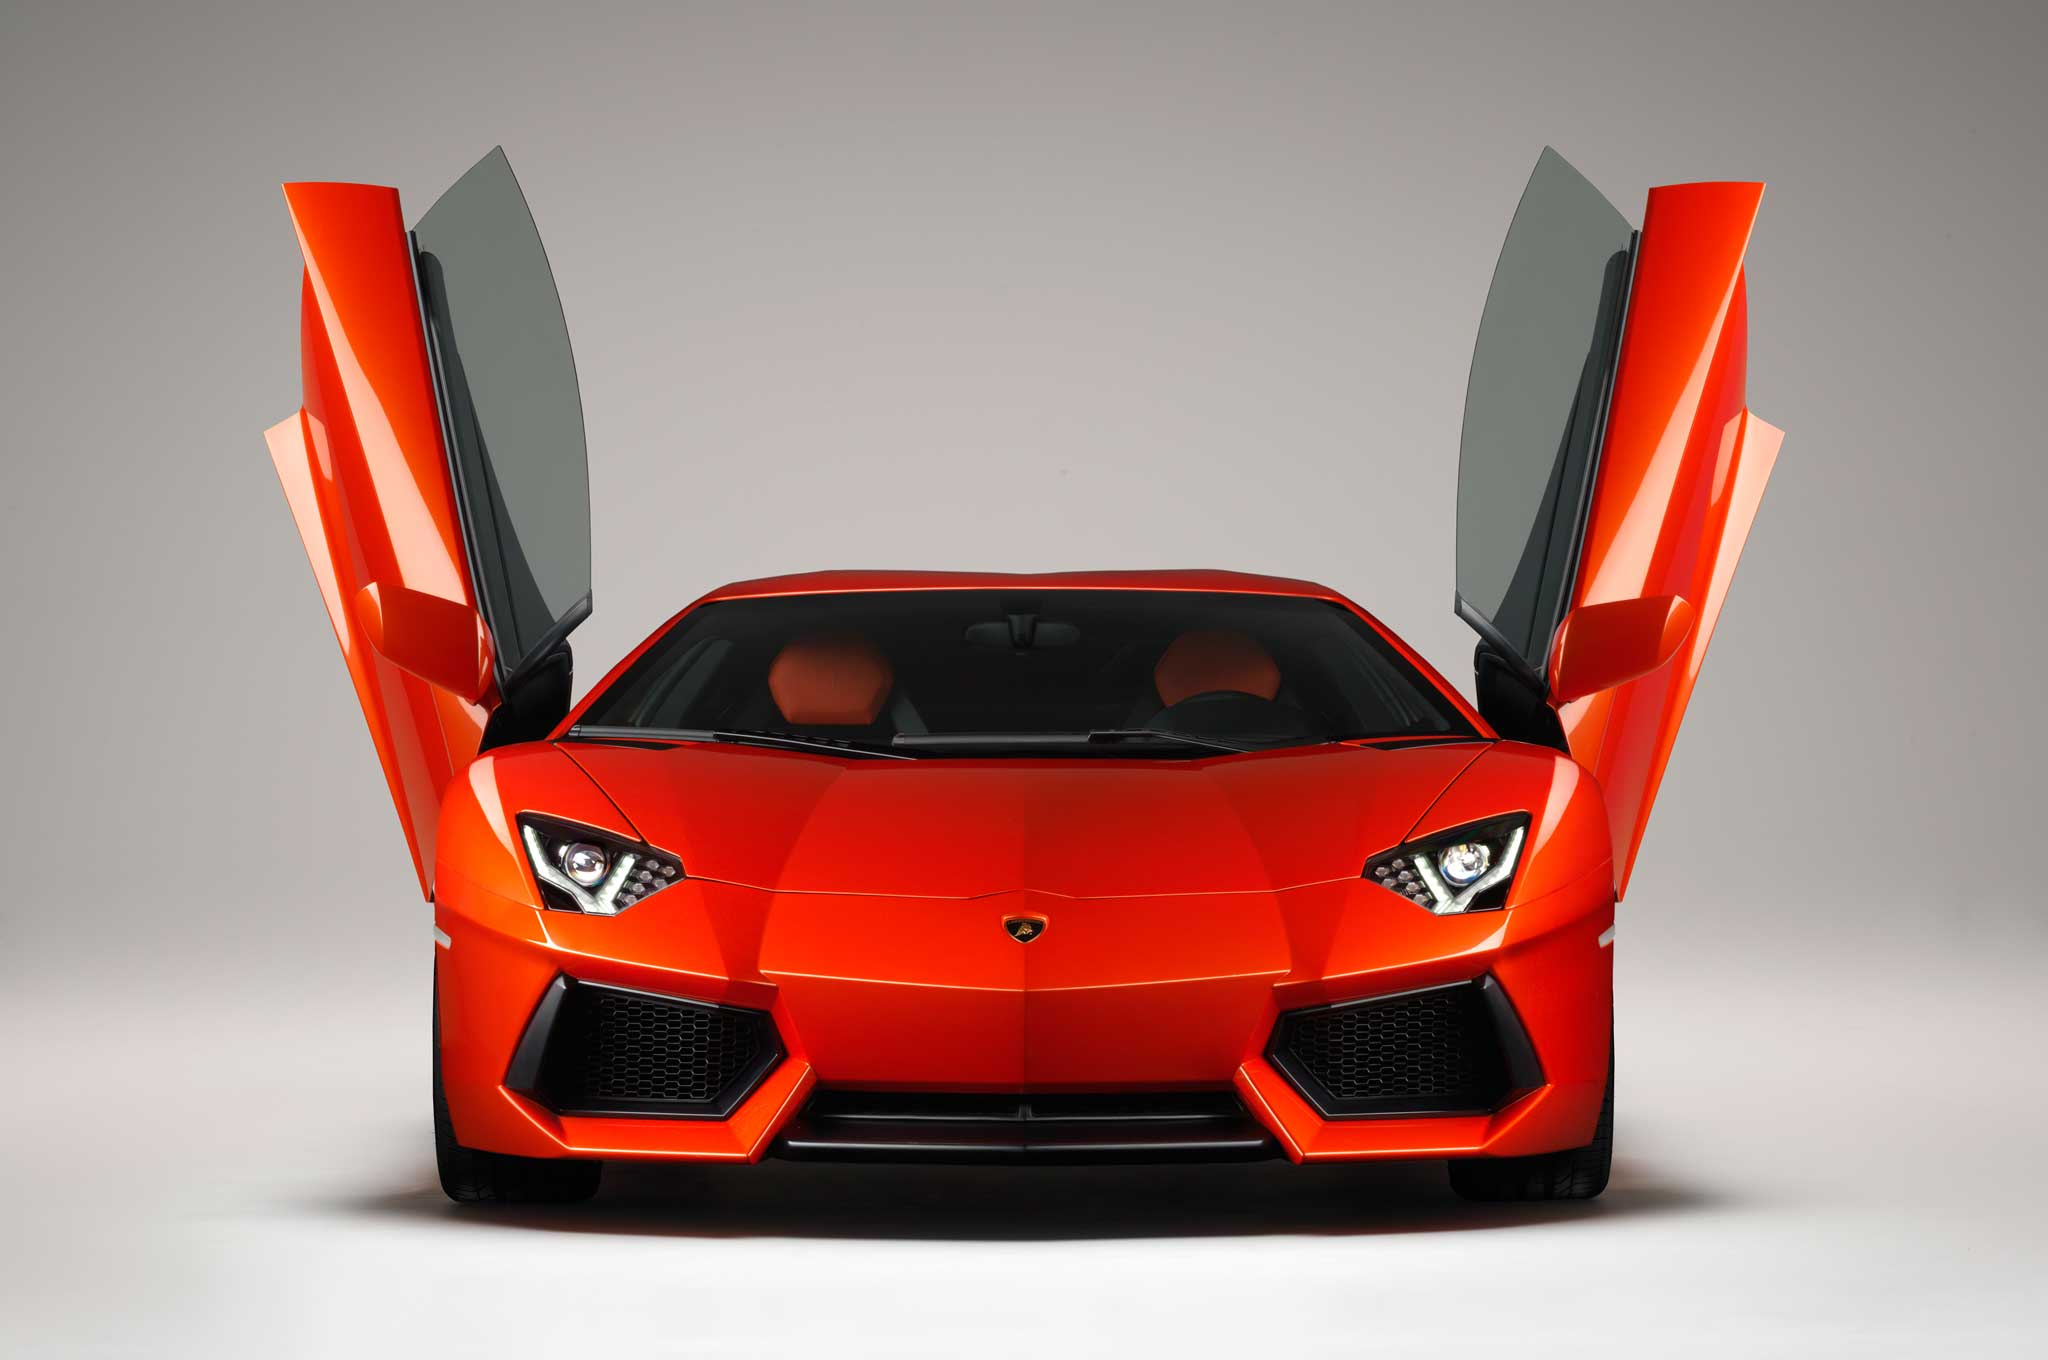 Attractive How Much Would It Cost To Fix Kanye Westu0027s Lamborghini?